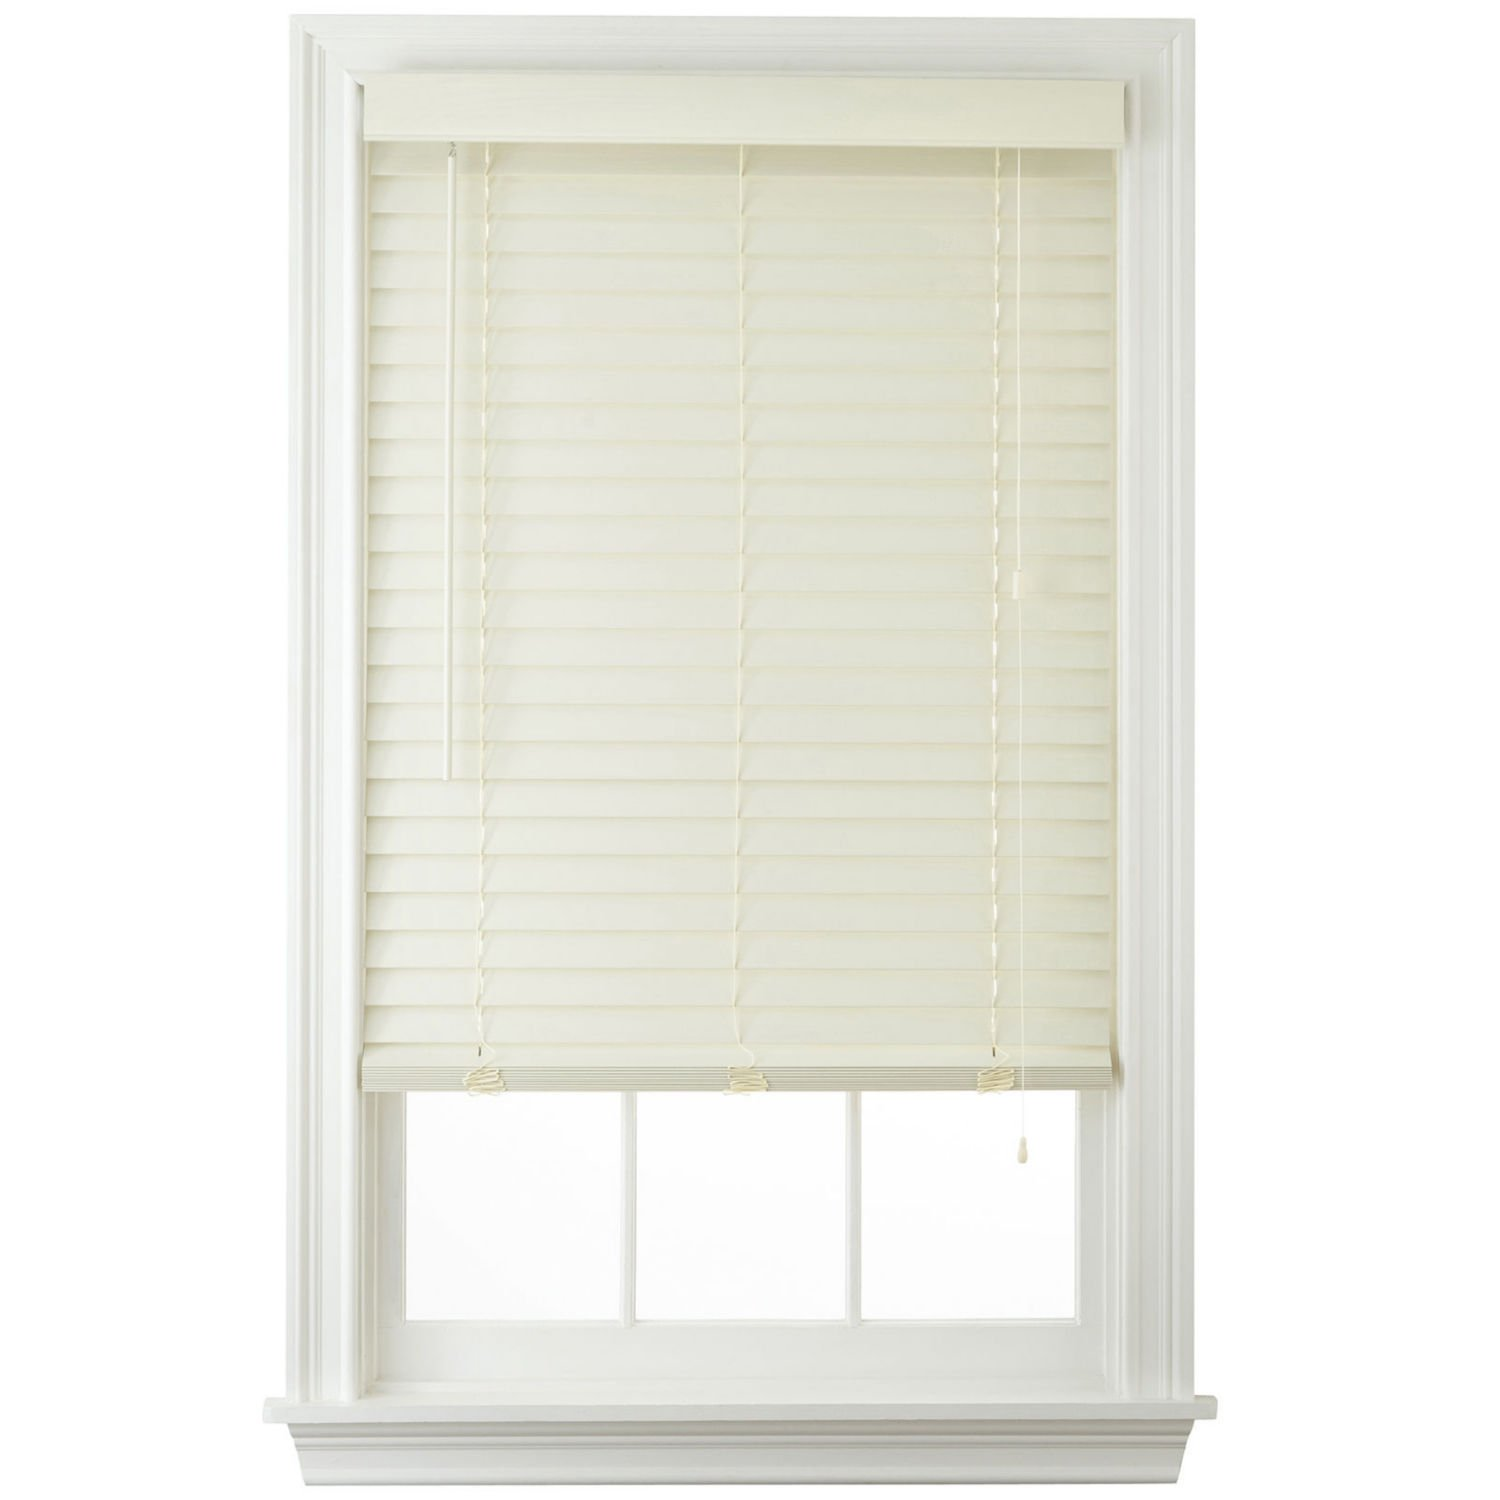 2'' Faux Wood Horizontal Blinds - Cream (46x64)